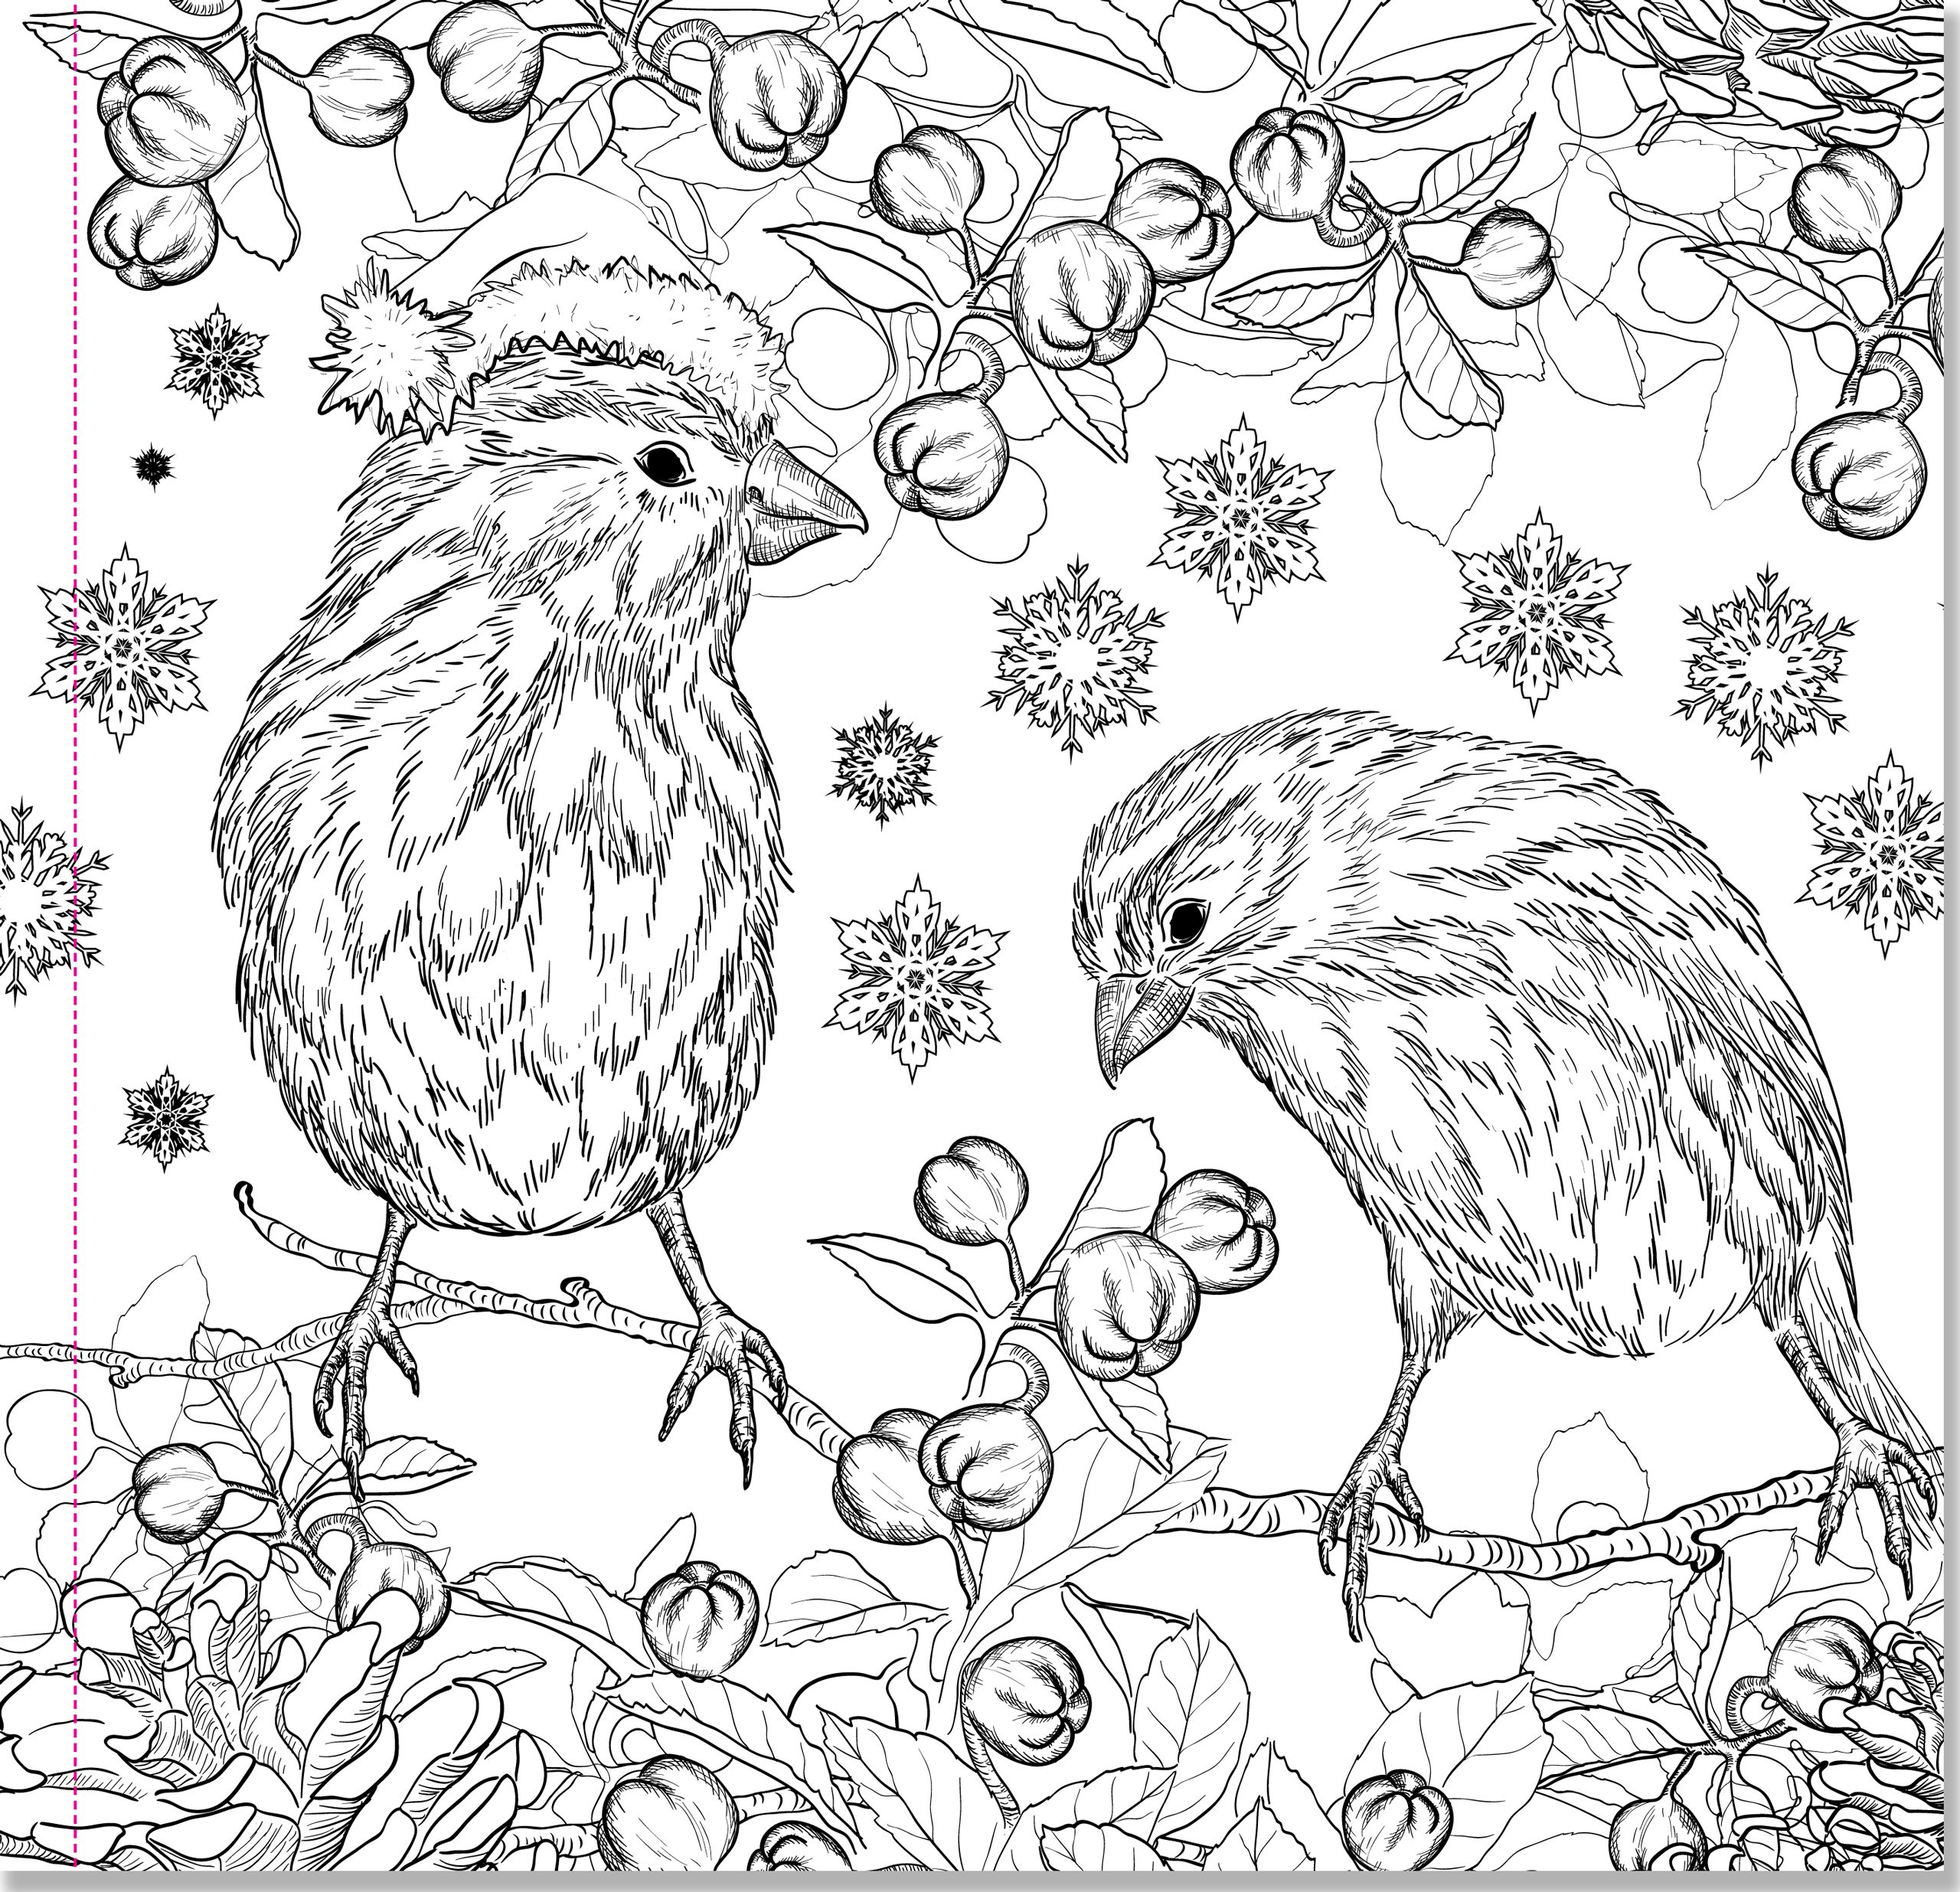 amazoncom christmas designs adult coloring book 31 stress relieving designs studio 9781441319326 peter pauper press books